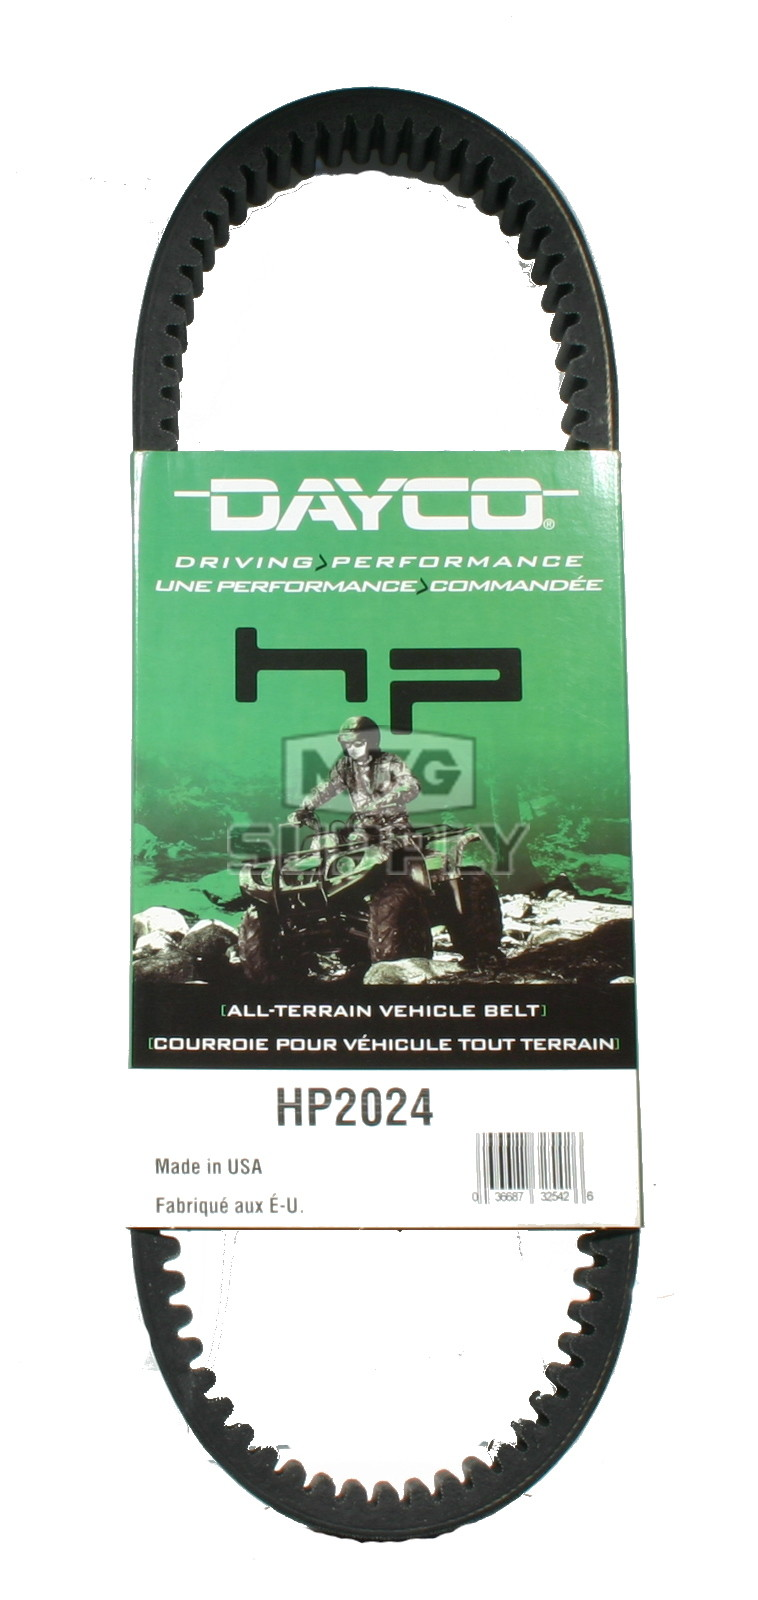 hight resolution of hp2024 dayco high performance utility vehicle belt fits kawasaki mule 1000 2010